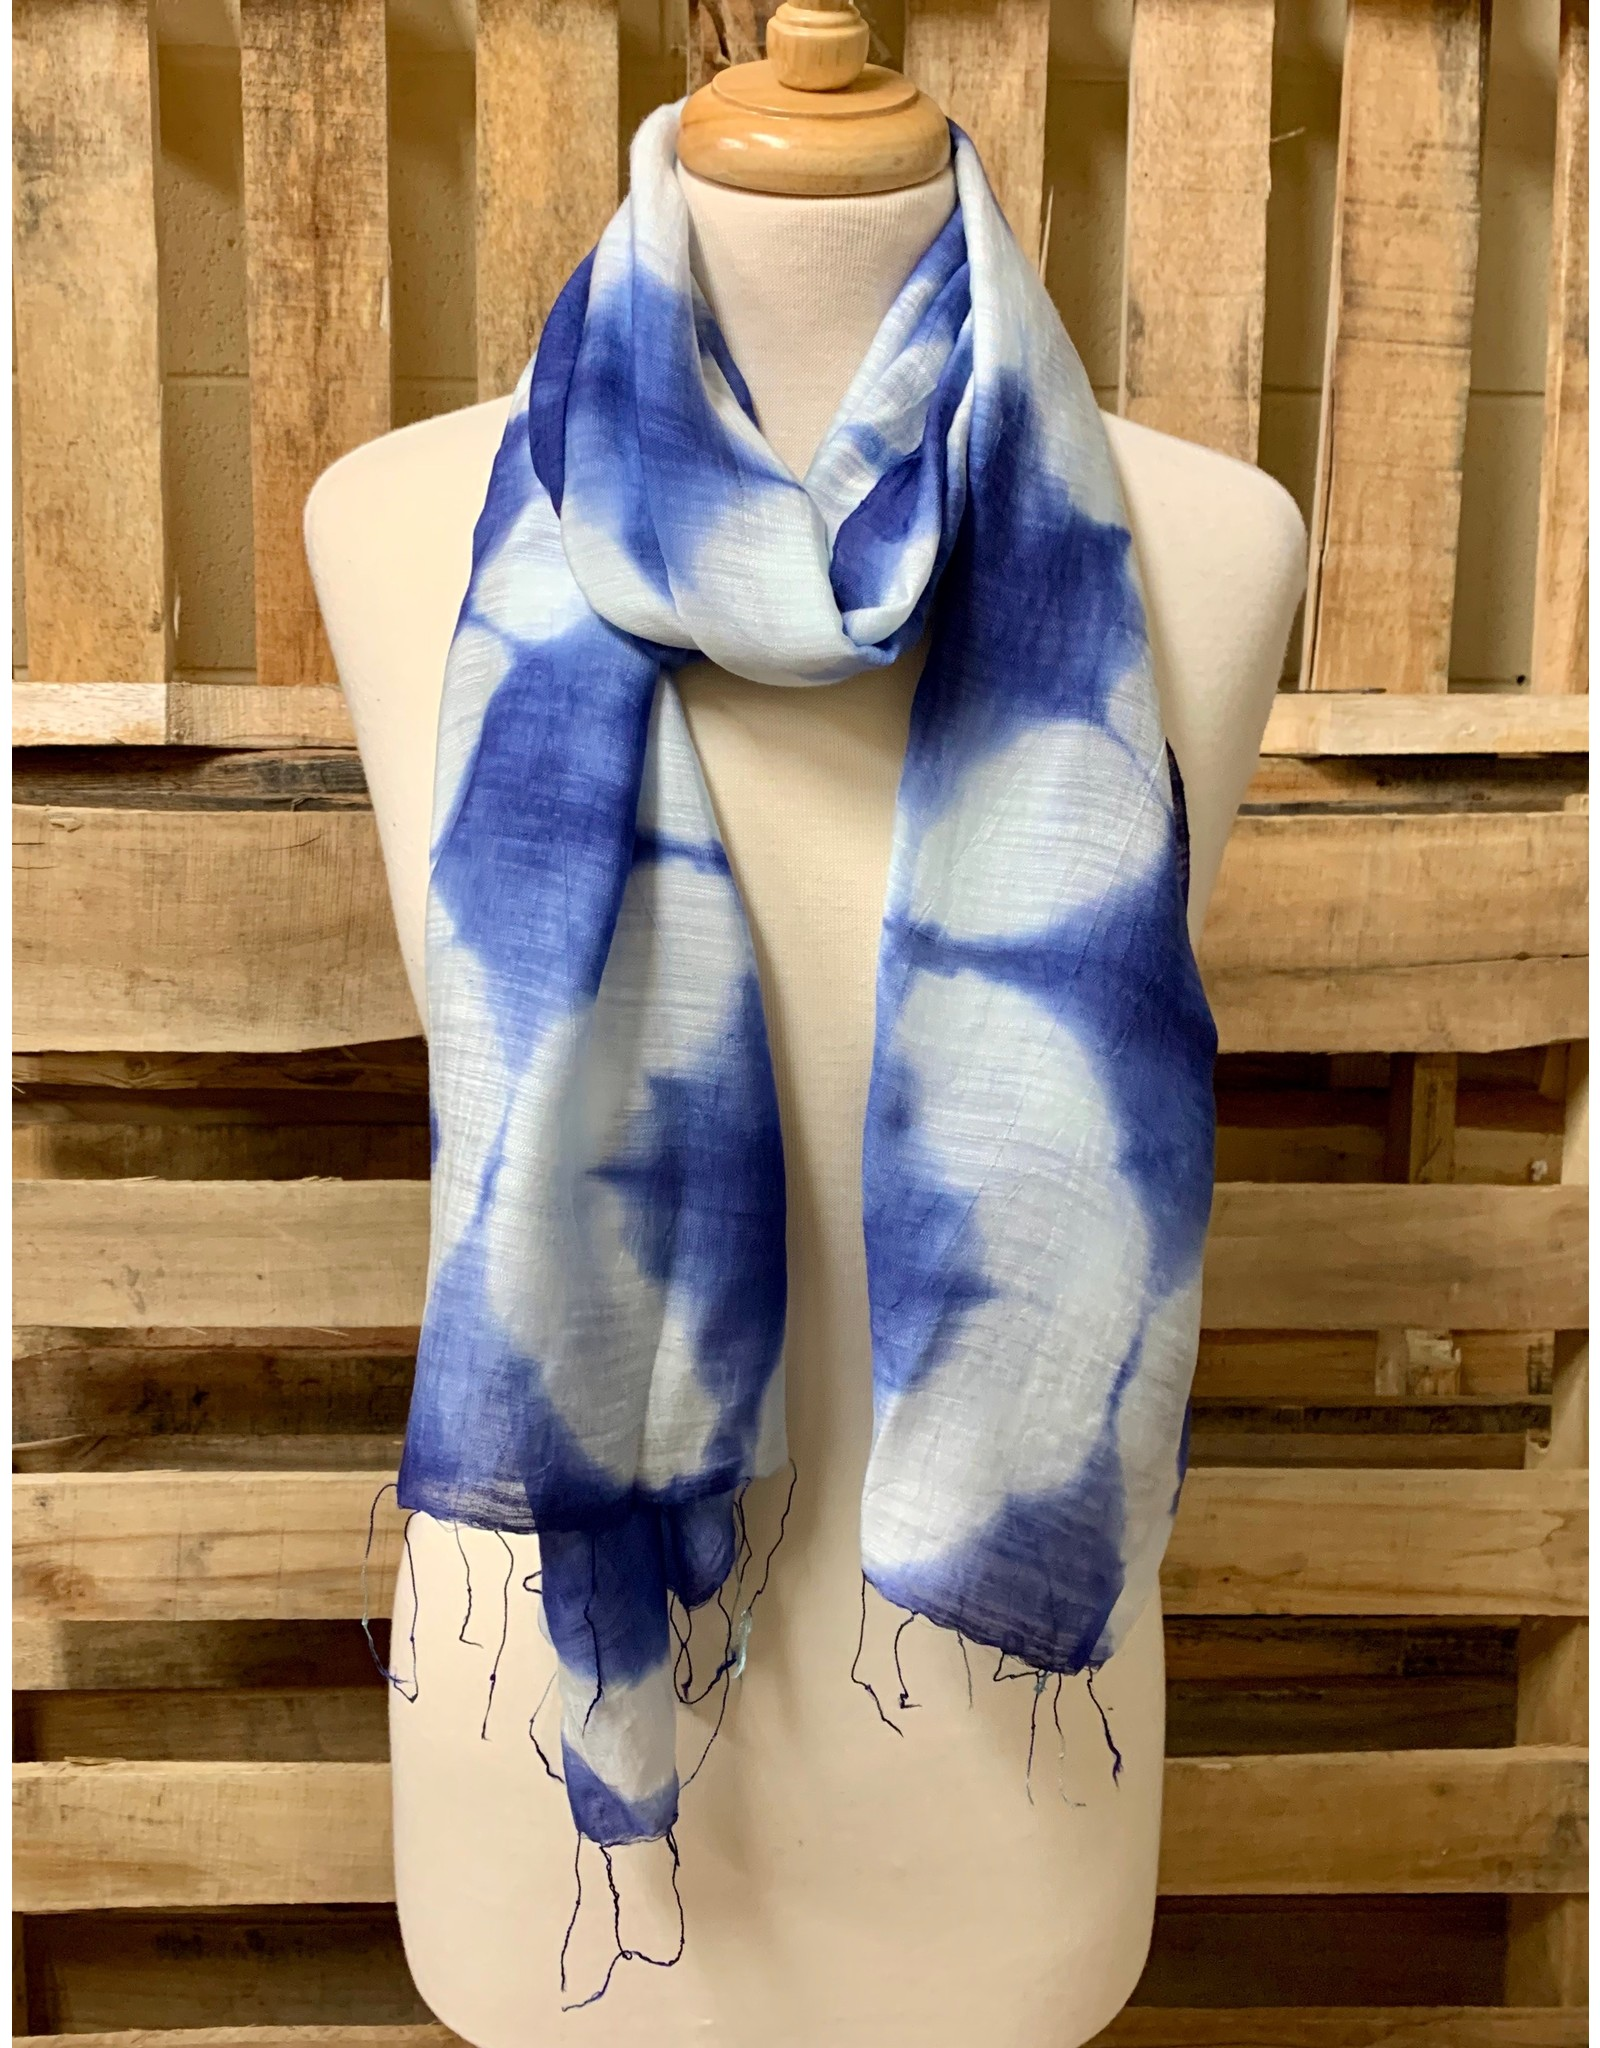 Ten Thousand Villages True Blue Tie Dyed Scarf